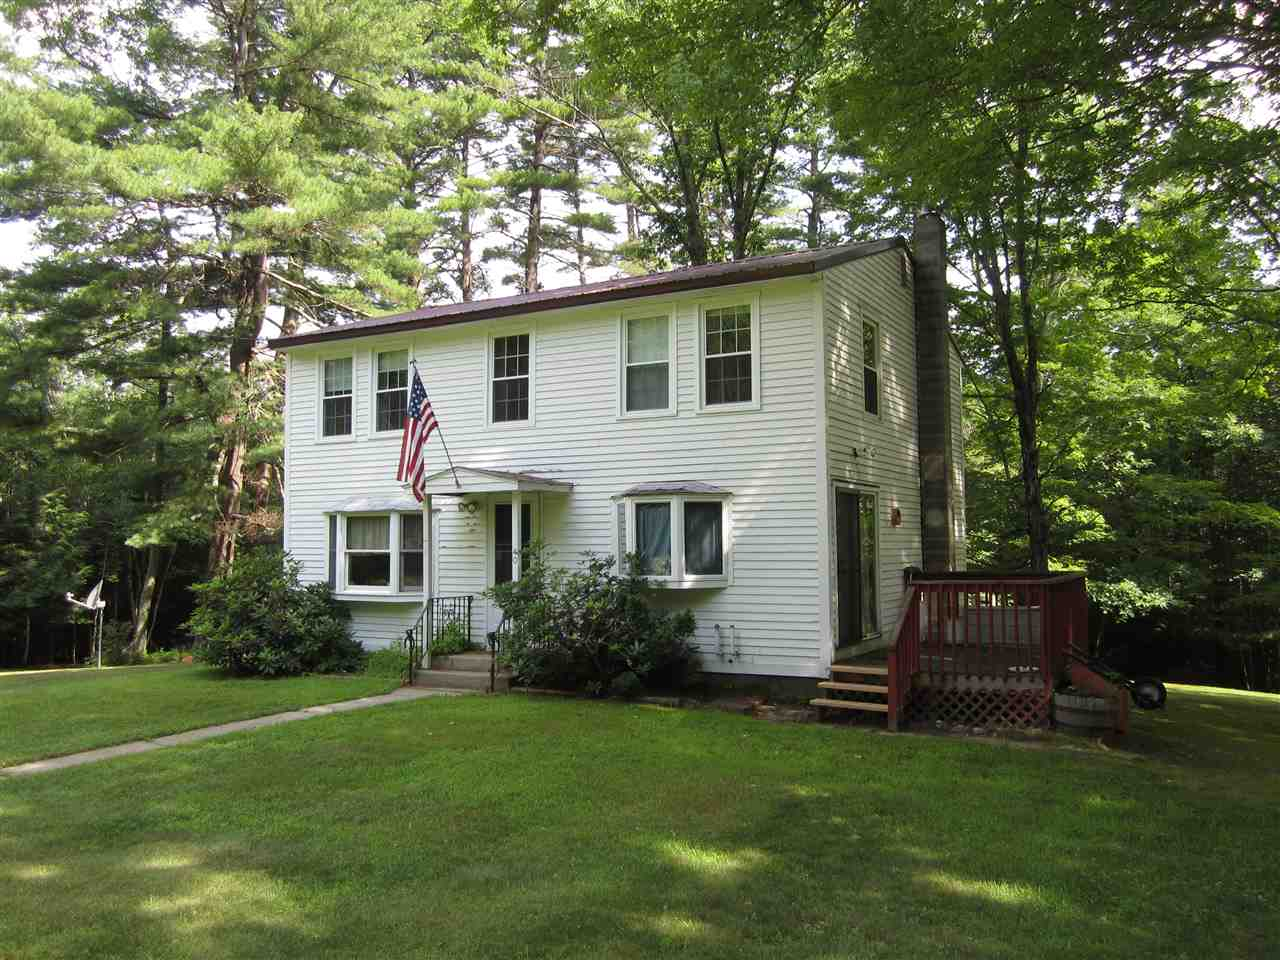 MLS 4768359: 40 Barrus Road, Richmond NH